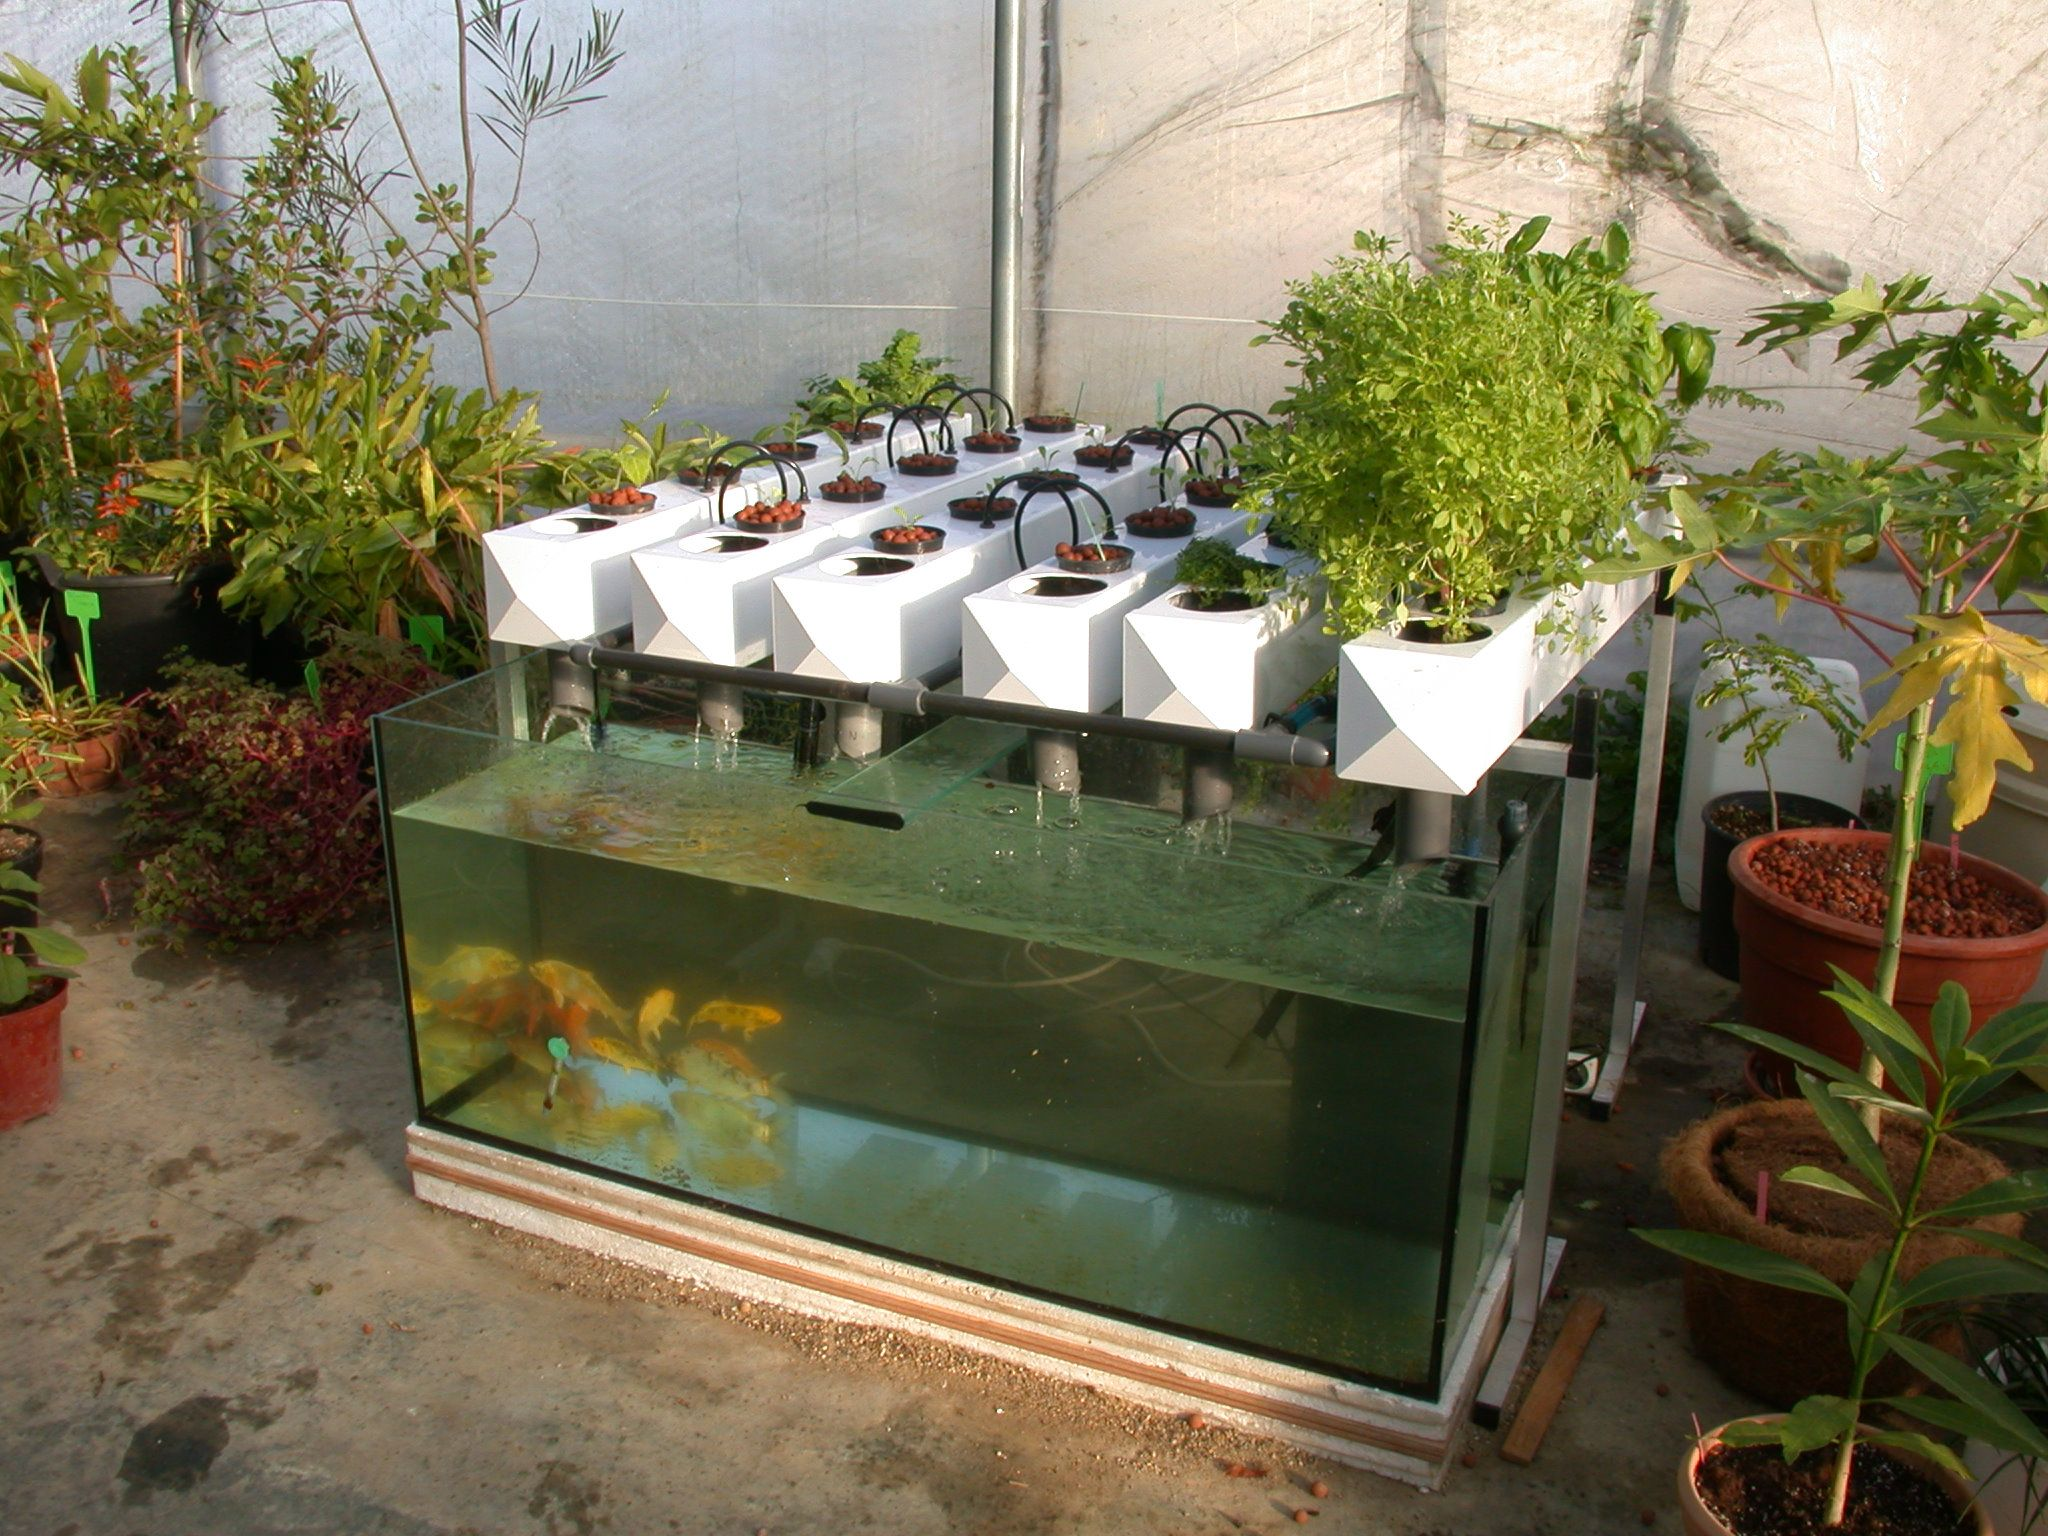 Aquaponics general hydroponics europe ghe official for Hydroponic fish tank